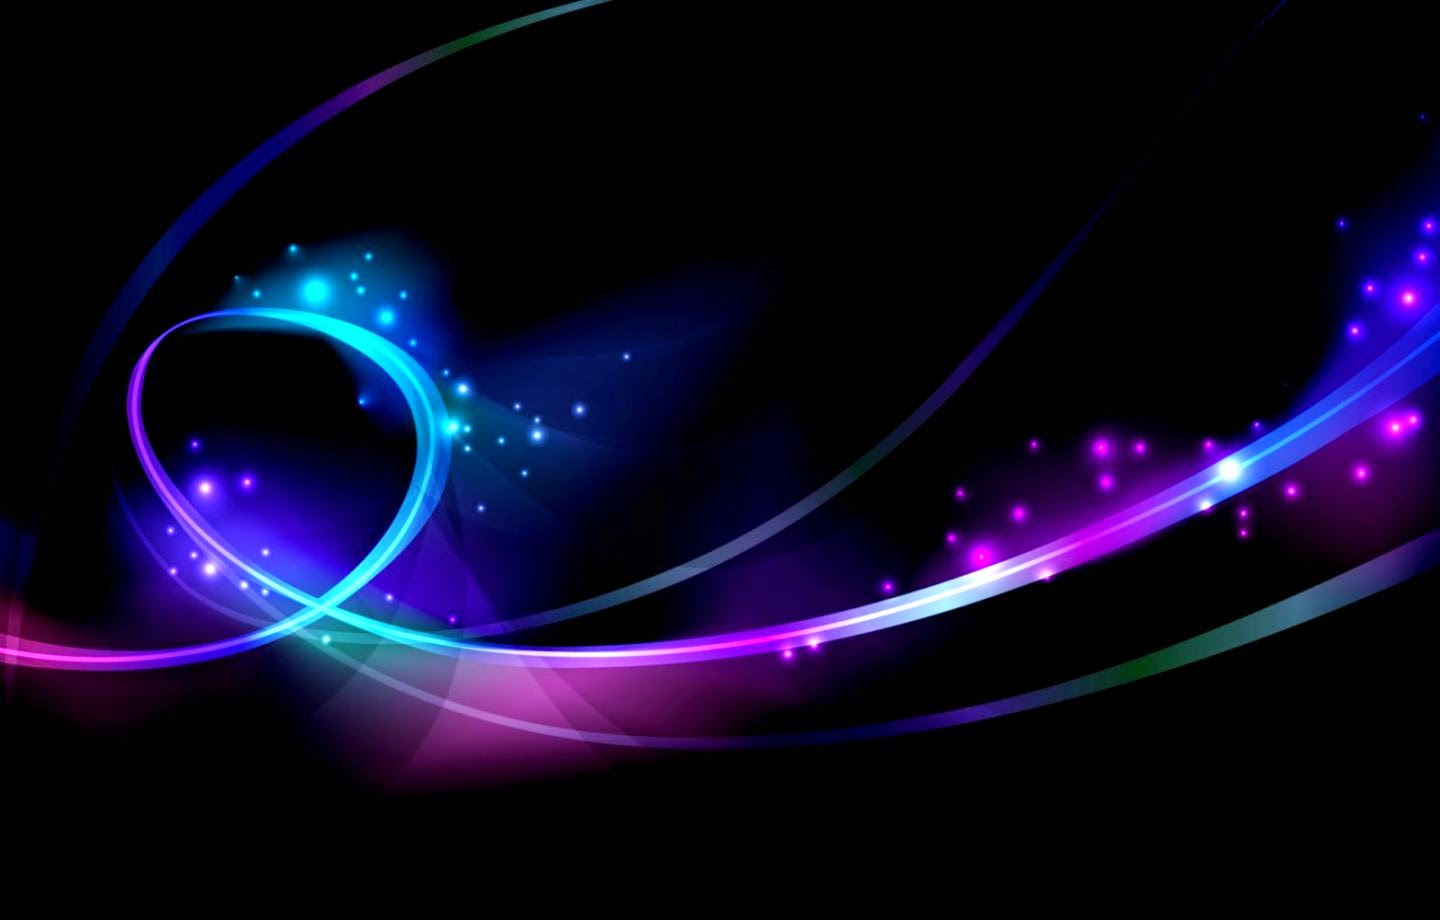 Cool Wallpapers 1920X1080 Abstract Hd | Amazing Wallpapers